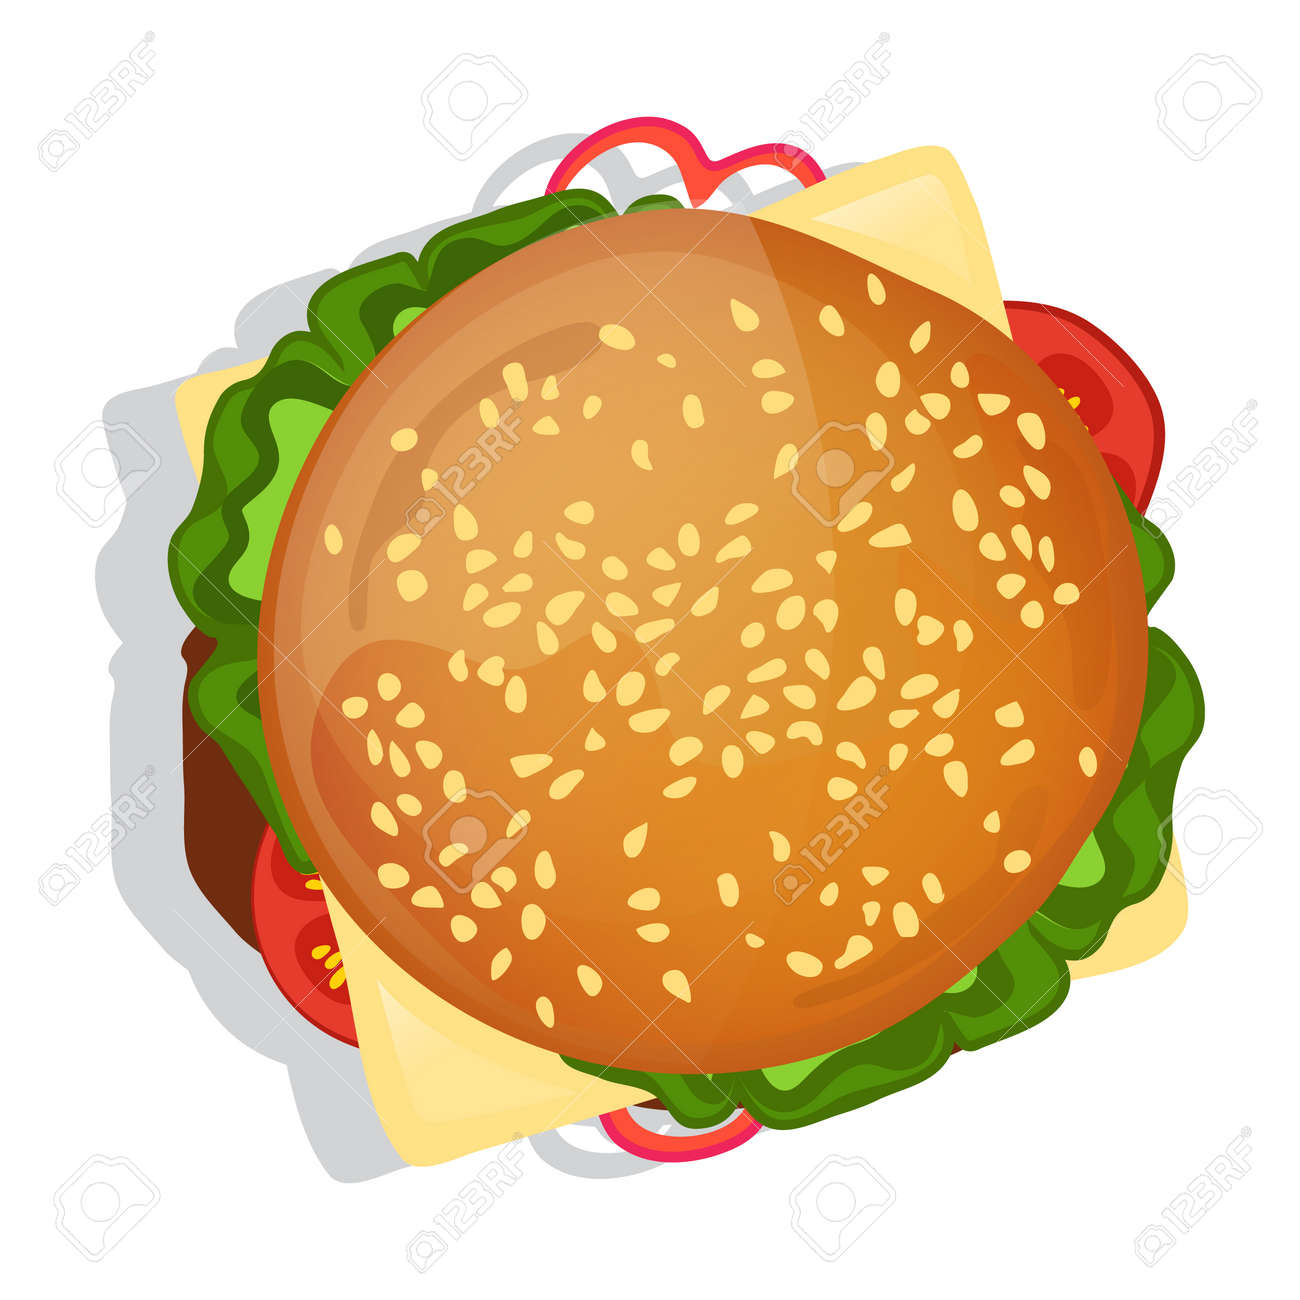 Delicious burger icon vector illustration isolated on white background. Cafe or restaurant fast food snack, top view eating menu pictogram. - 78609577